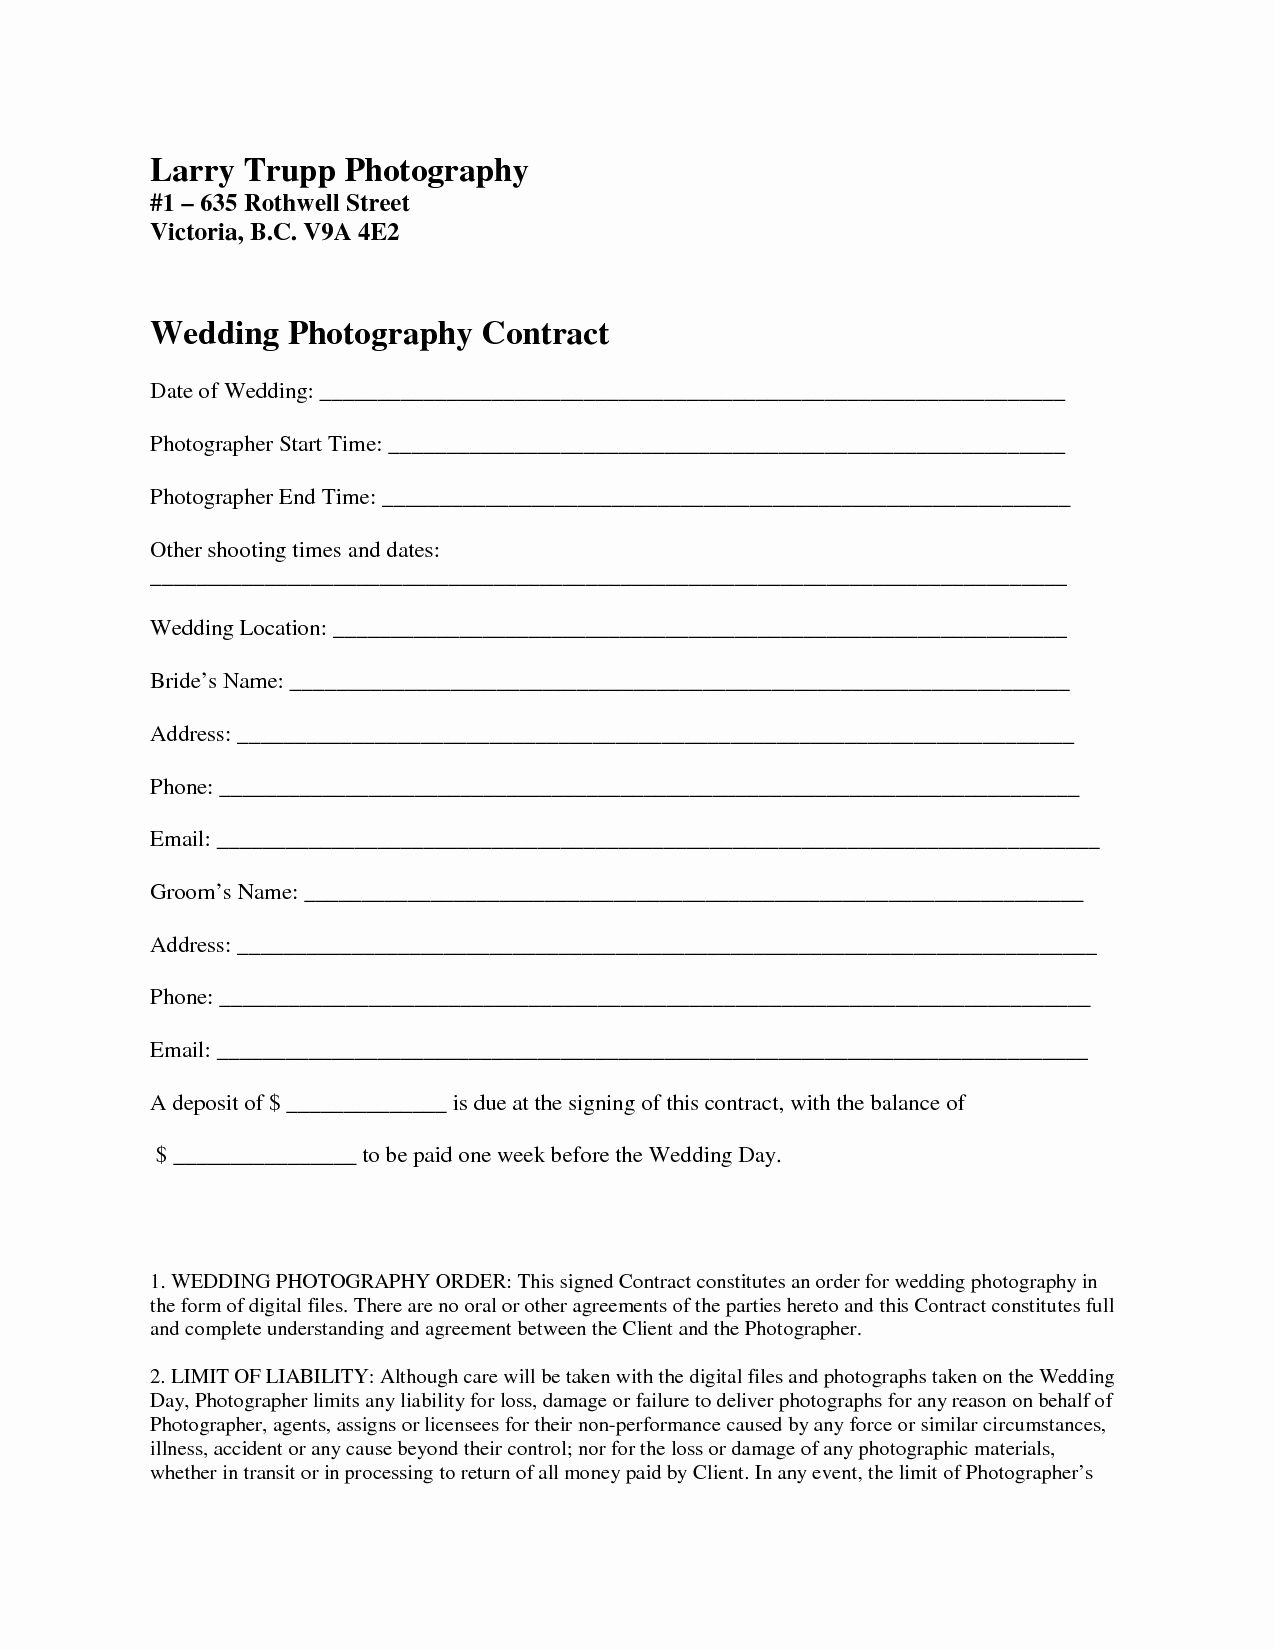 Free Wedding Photography Contract Template Fresh Graphy